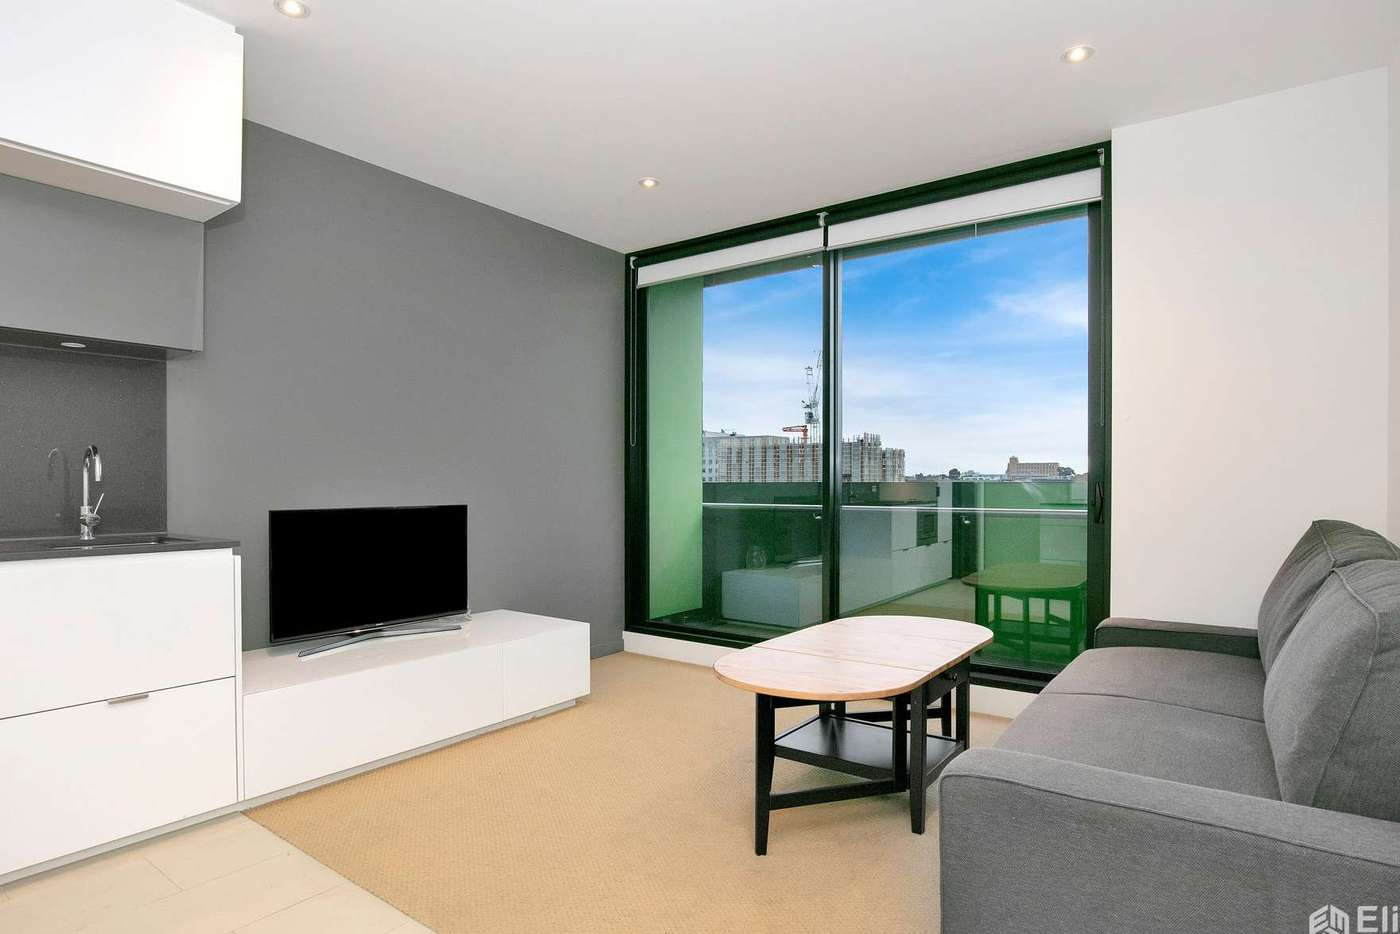 Main view of Homely apartment listing, 706/551 SWANSTON STREET, Carlton VIC 3053